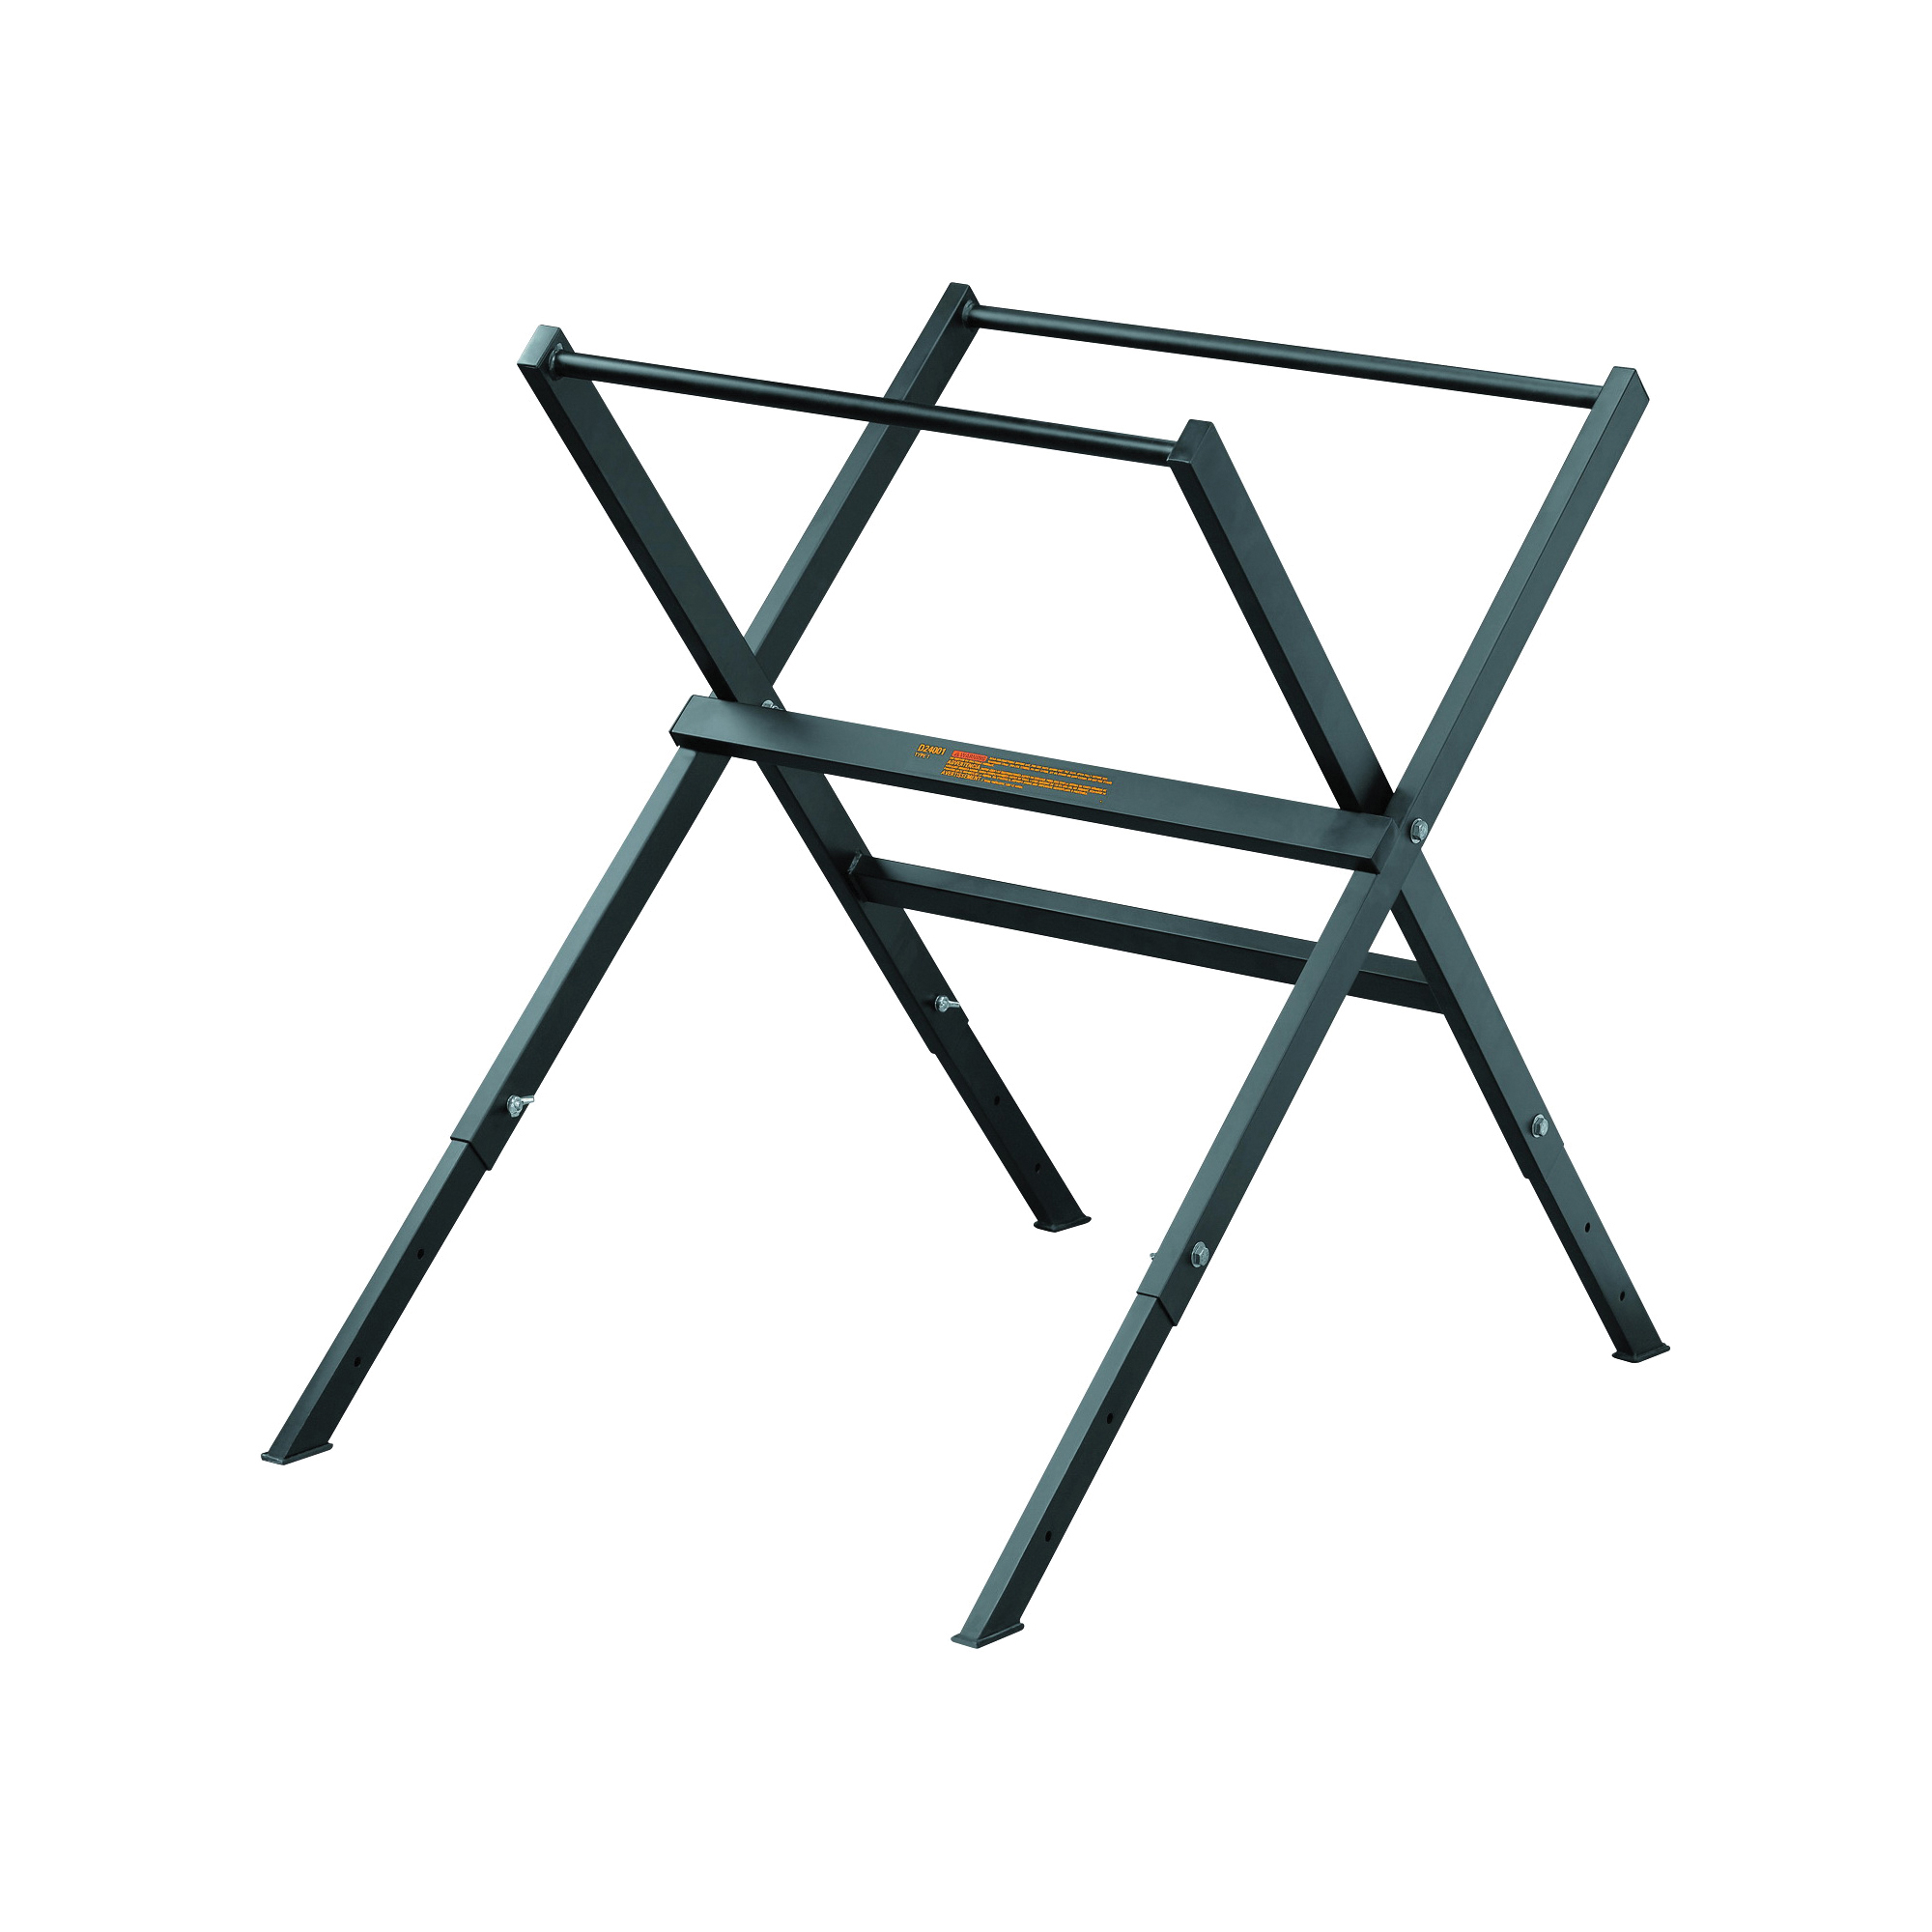 Picture of DeWALT D24001 Folding Stand, 300 lb, 23-3/4 in W Stand, 26-1/4 in D Stand, 29-1/4 in H Stand, Metal, Black